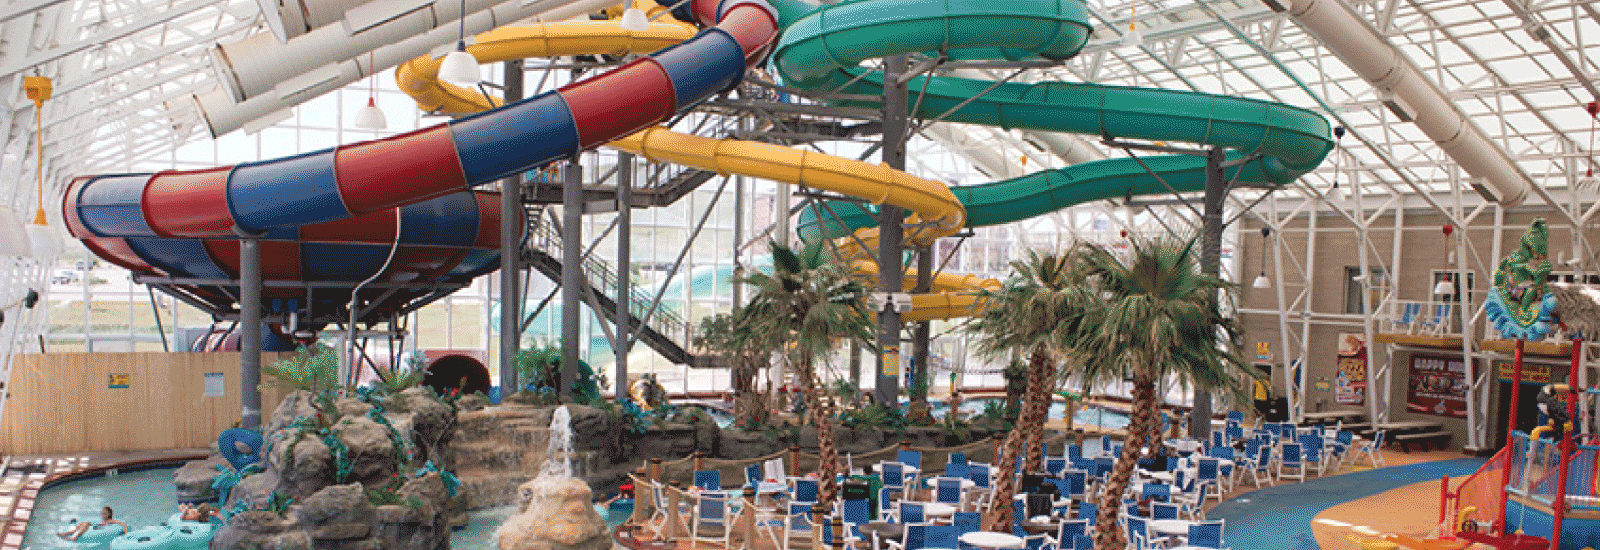 Waterparks Ellsworth AFB